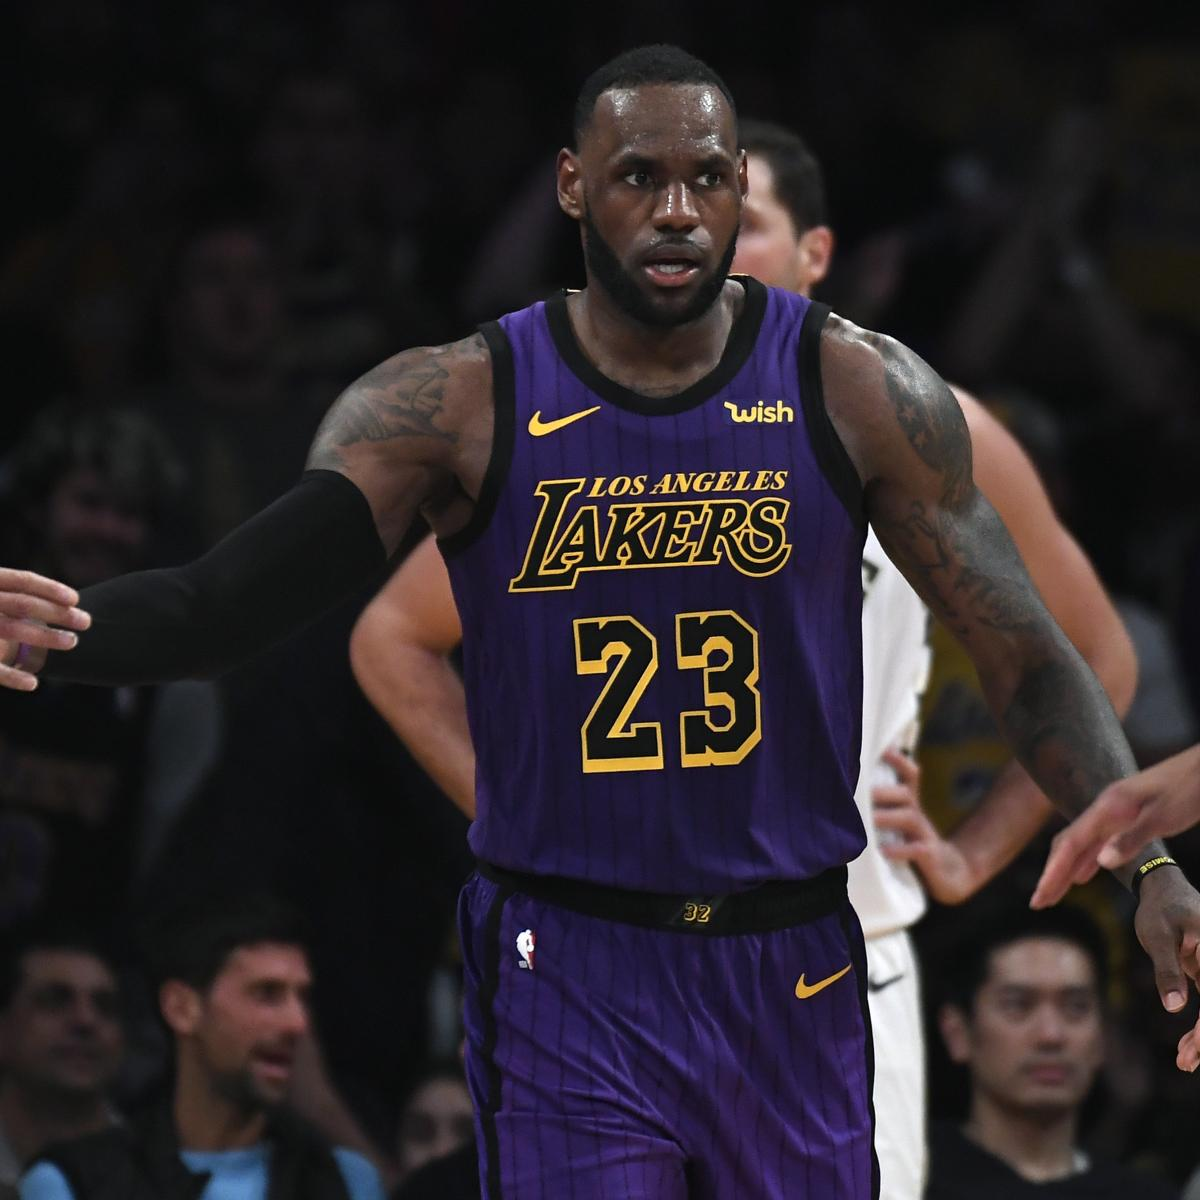 Although the Los Angeles Lakers trailed the Phoenix Suns 66-59 at halftime, LeBron James had something to celebrate Saturday...